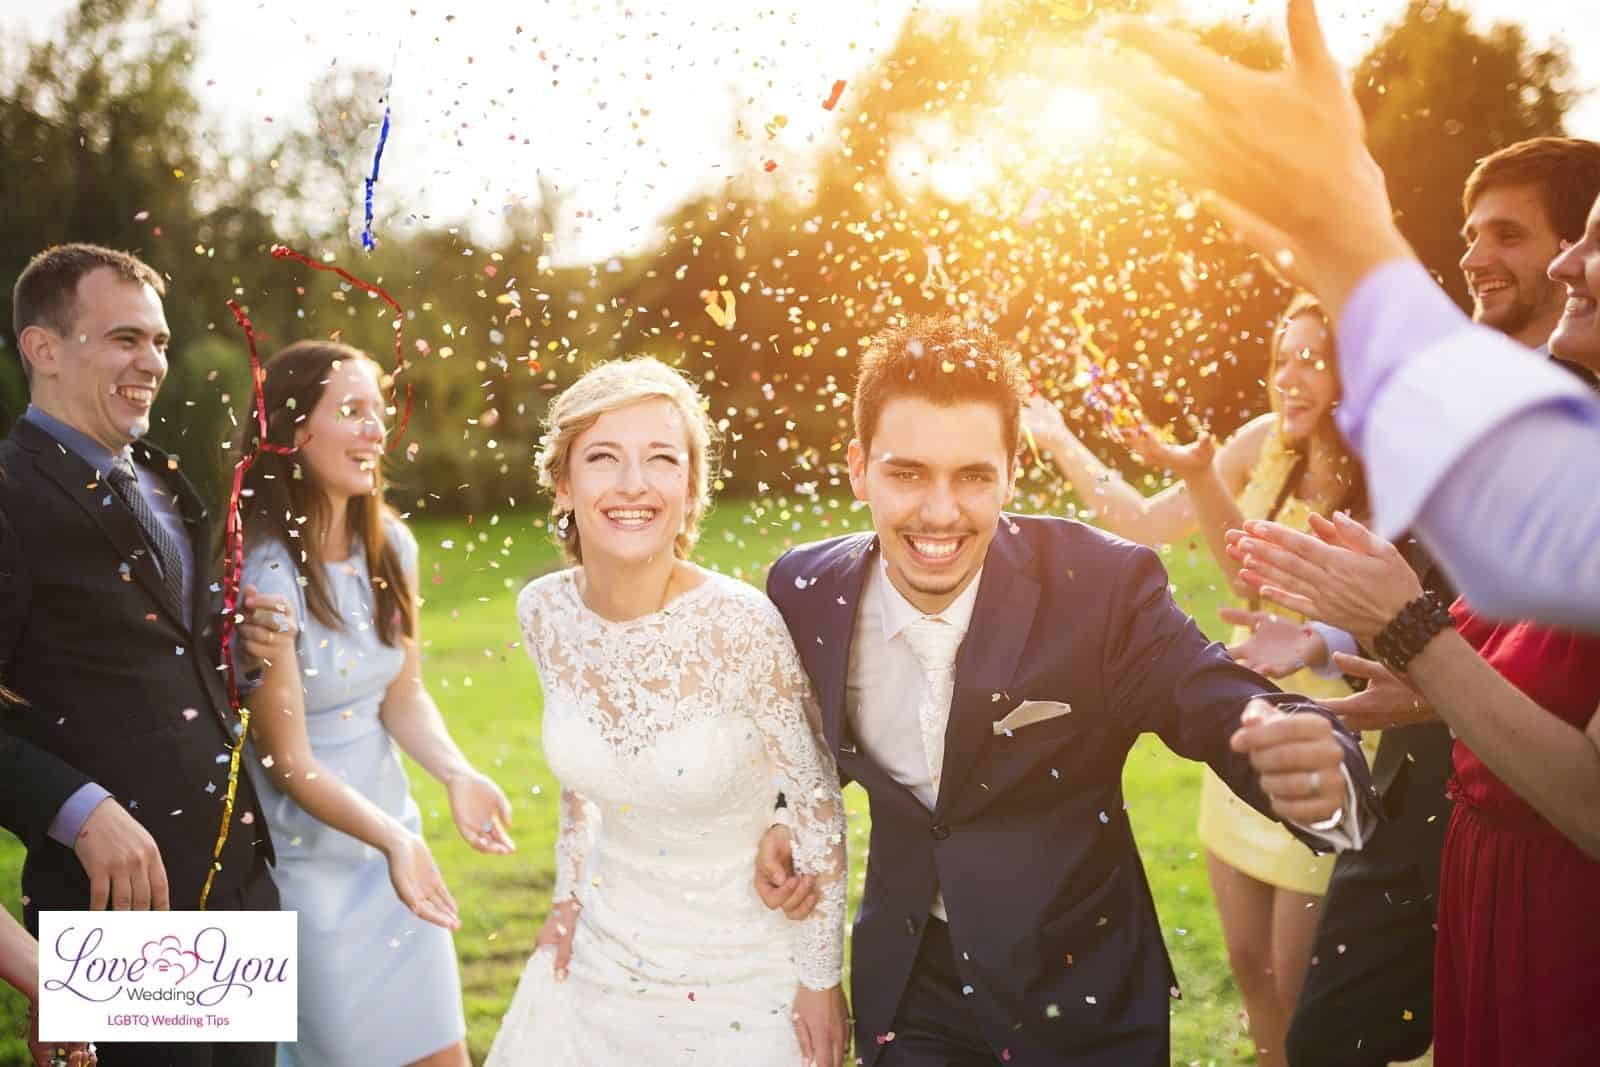 friends throwing confetti to the bride and groom